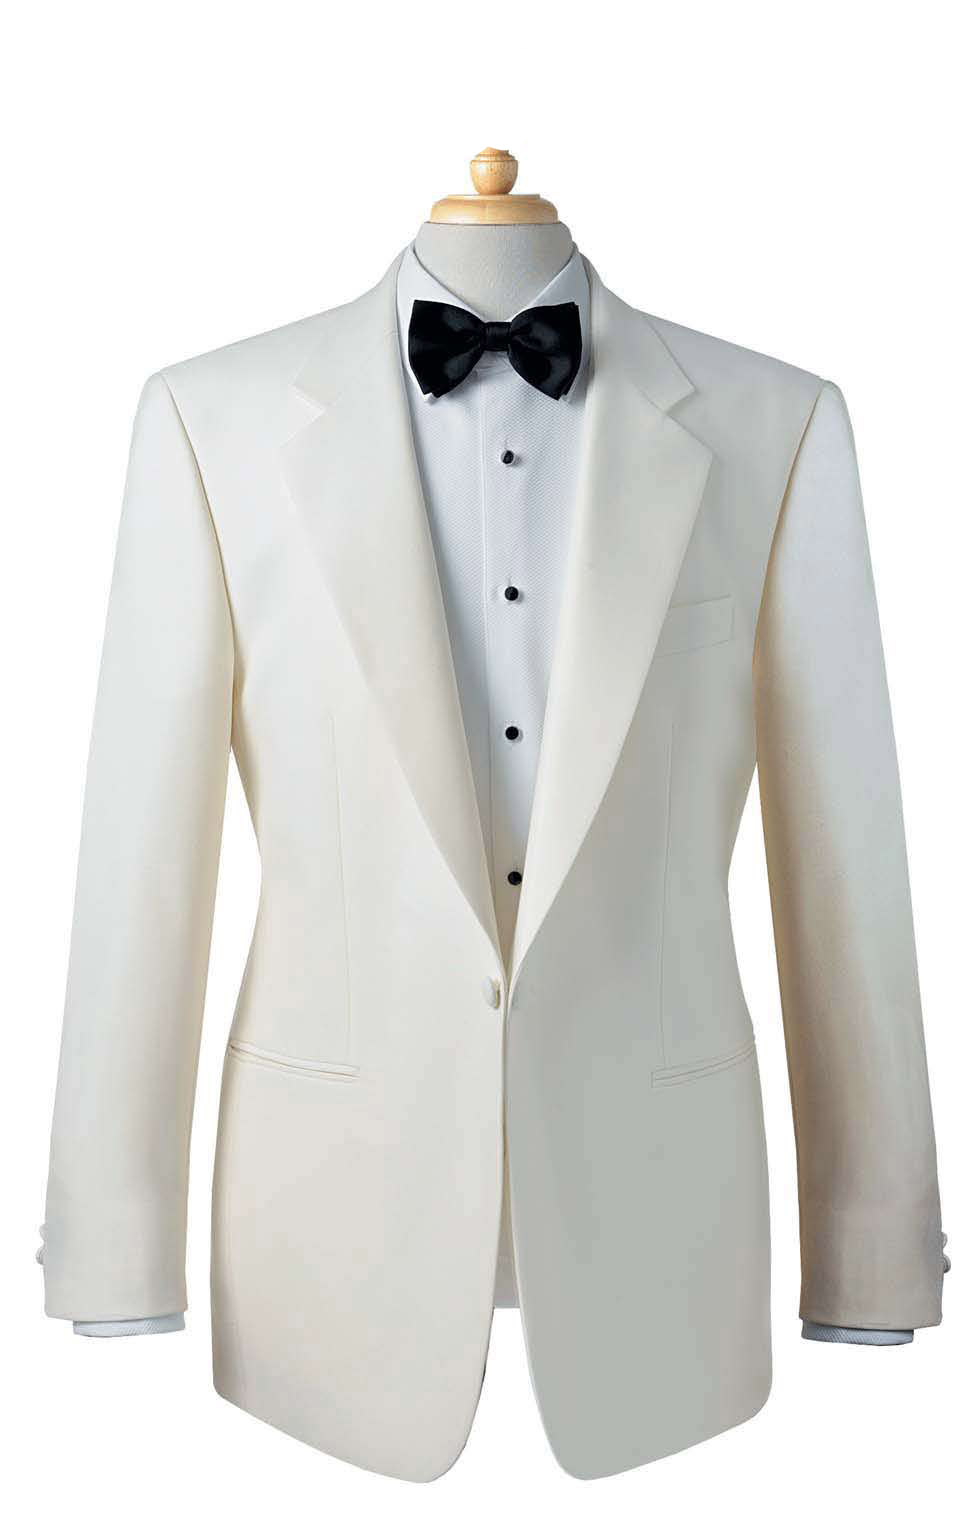 Stunning White Dinner Jacket Tuxedo 975 x 1535 · 56 kB · jpeg